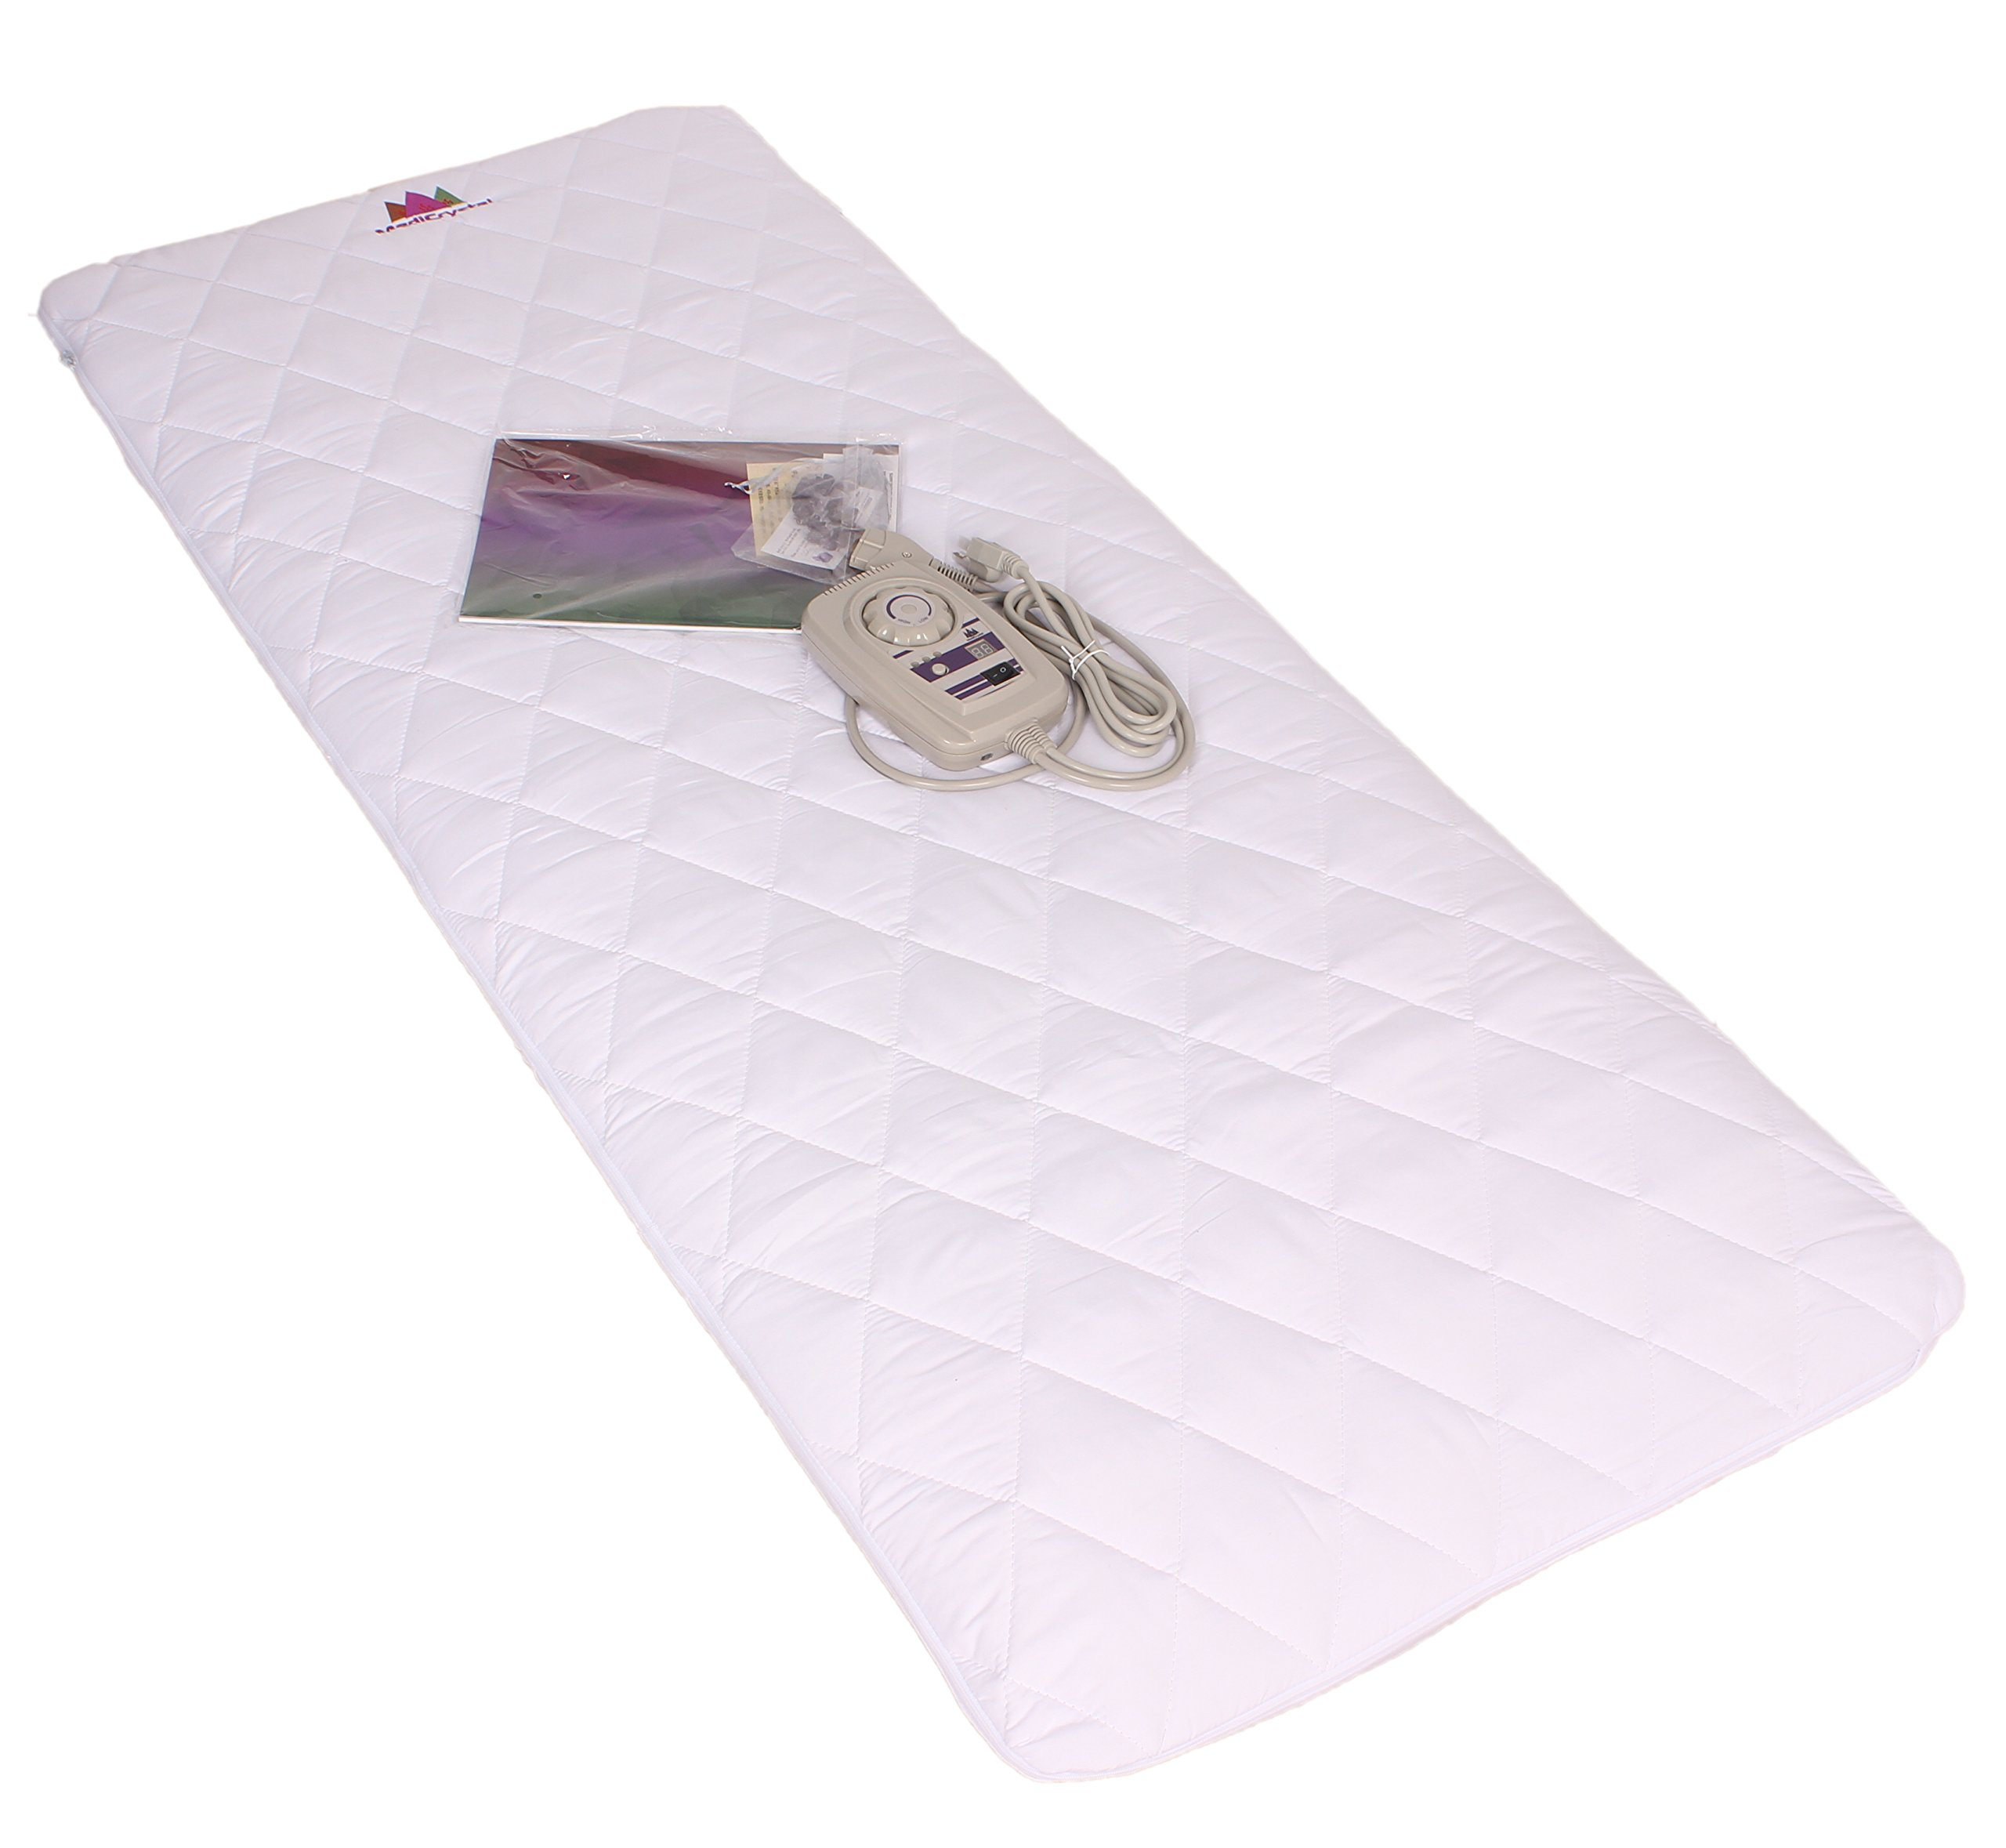 Far Infrared Amethyst Mat Midsize (59''L x 24''W) - Negative Ion - FIR Therapy - Natural Amethyst - FDA Registered Manufacturer - Adjustable Temperature Setting - Hot Crystal Heating Pad - Reddish Brown by MediCrystal (Image #7)